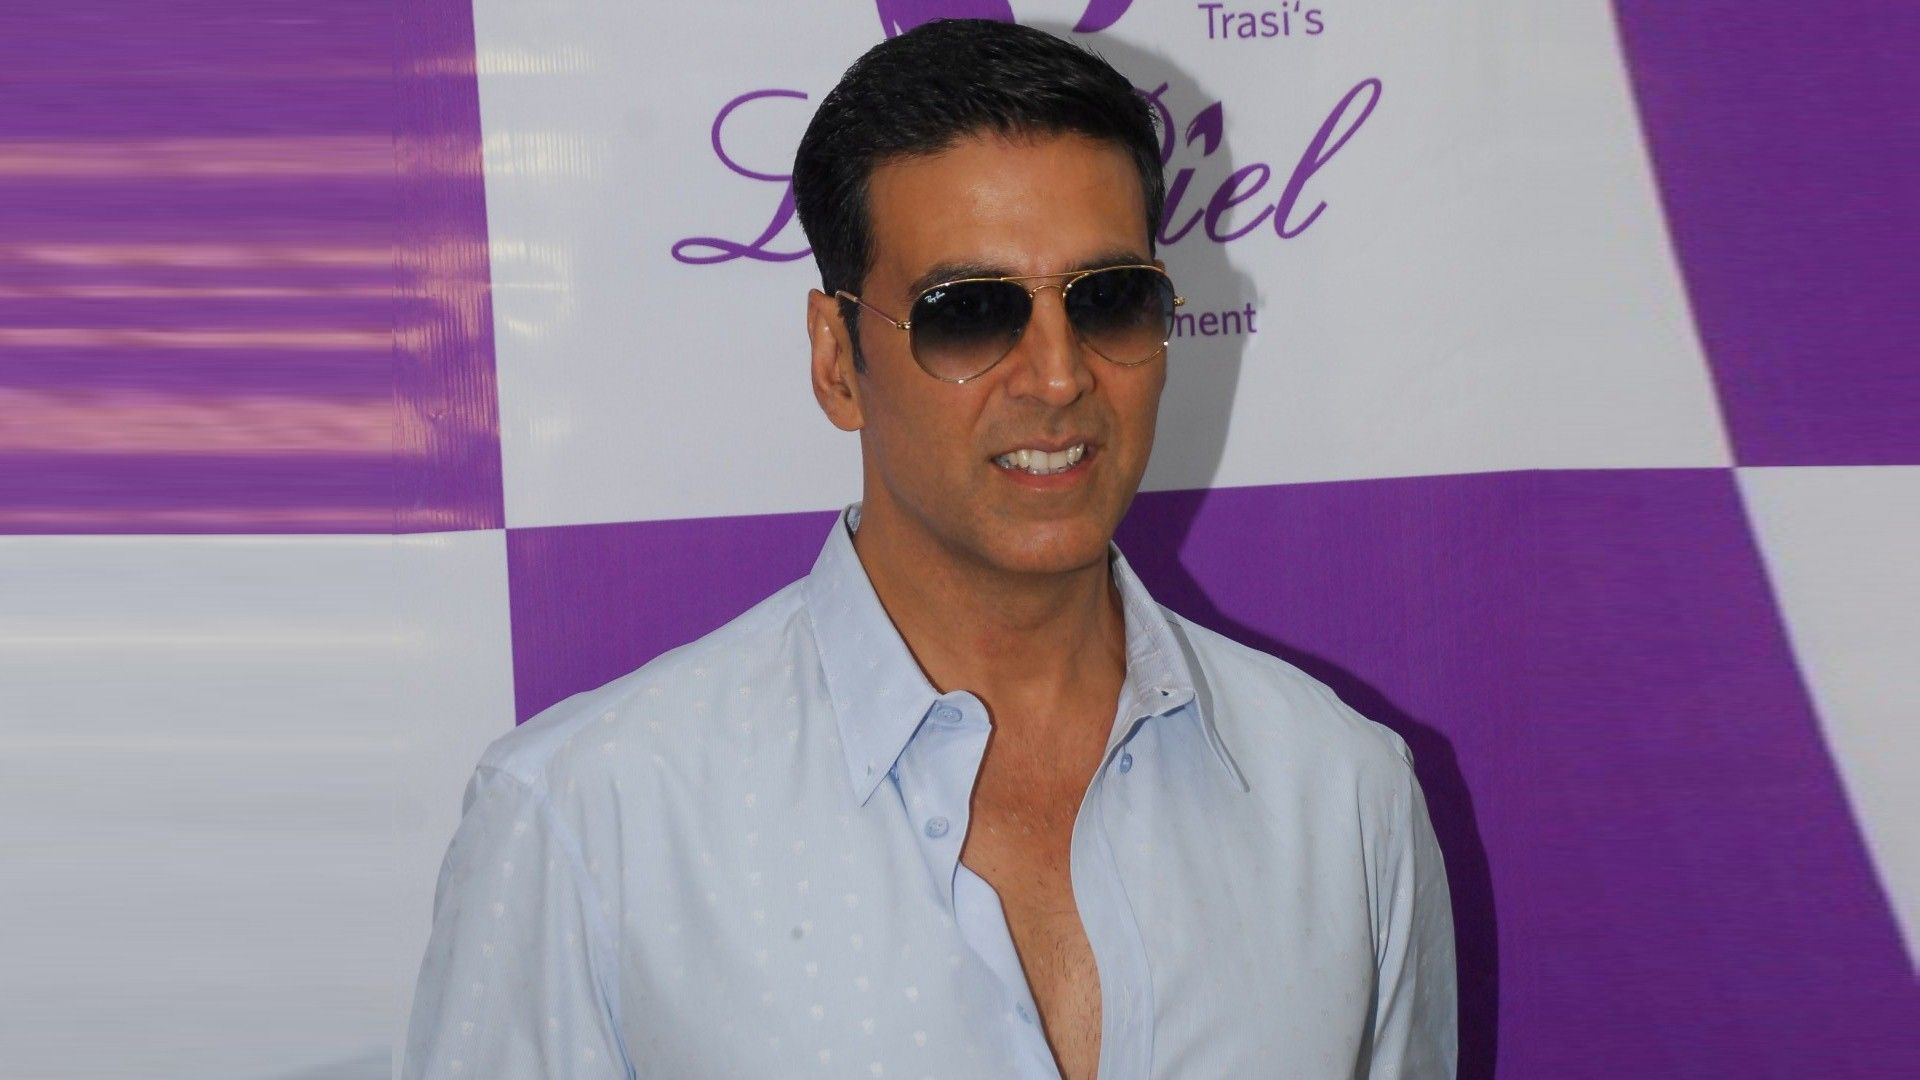 Wallpaper download bollywood actors - Handsome Bollywood Actor Akshay Kumar In Goggles Wallpaper